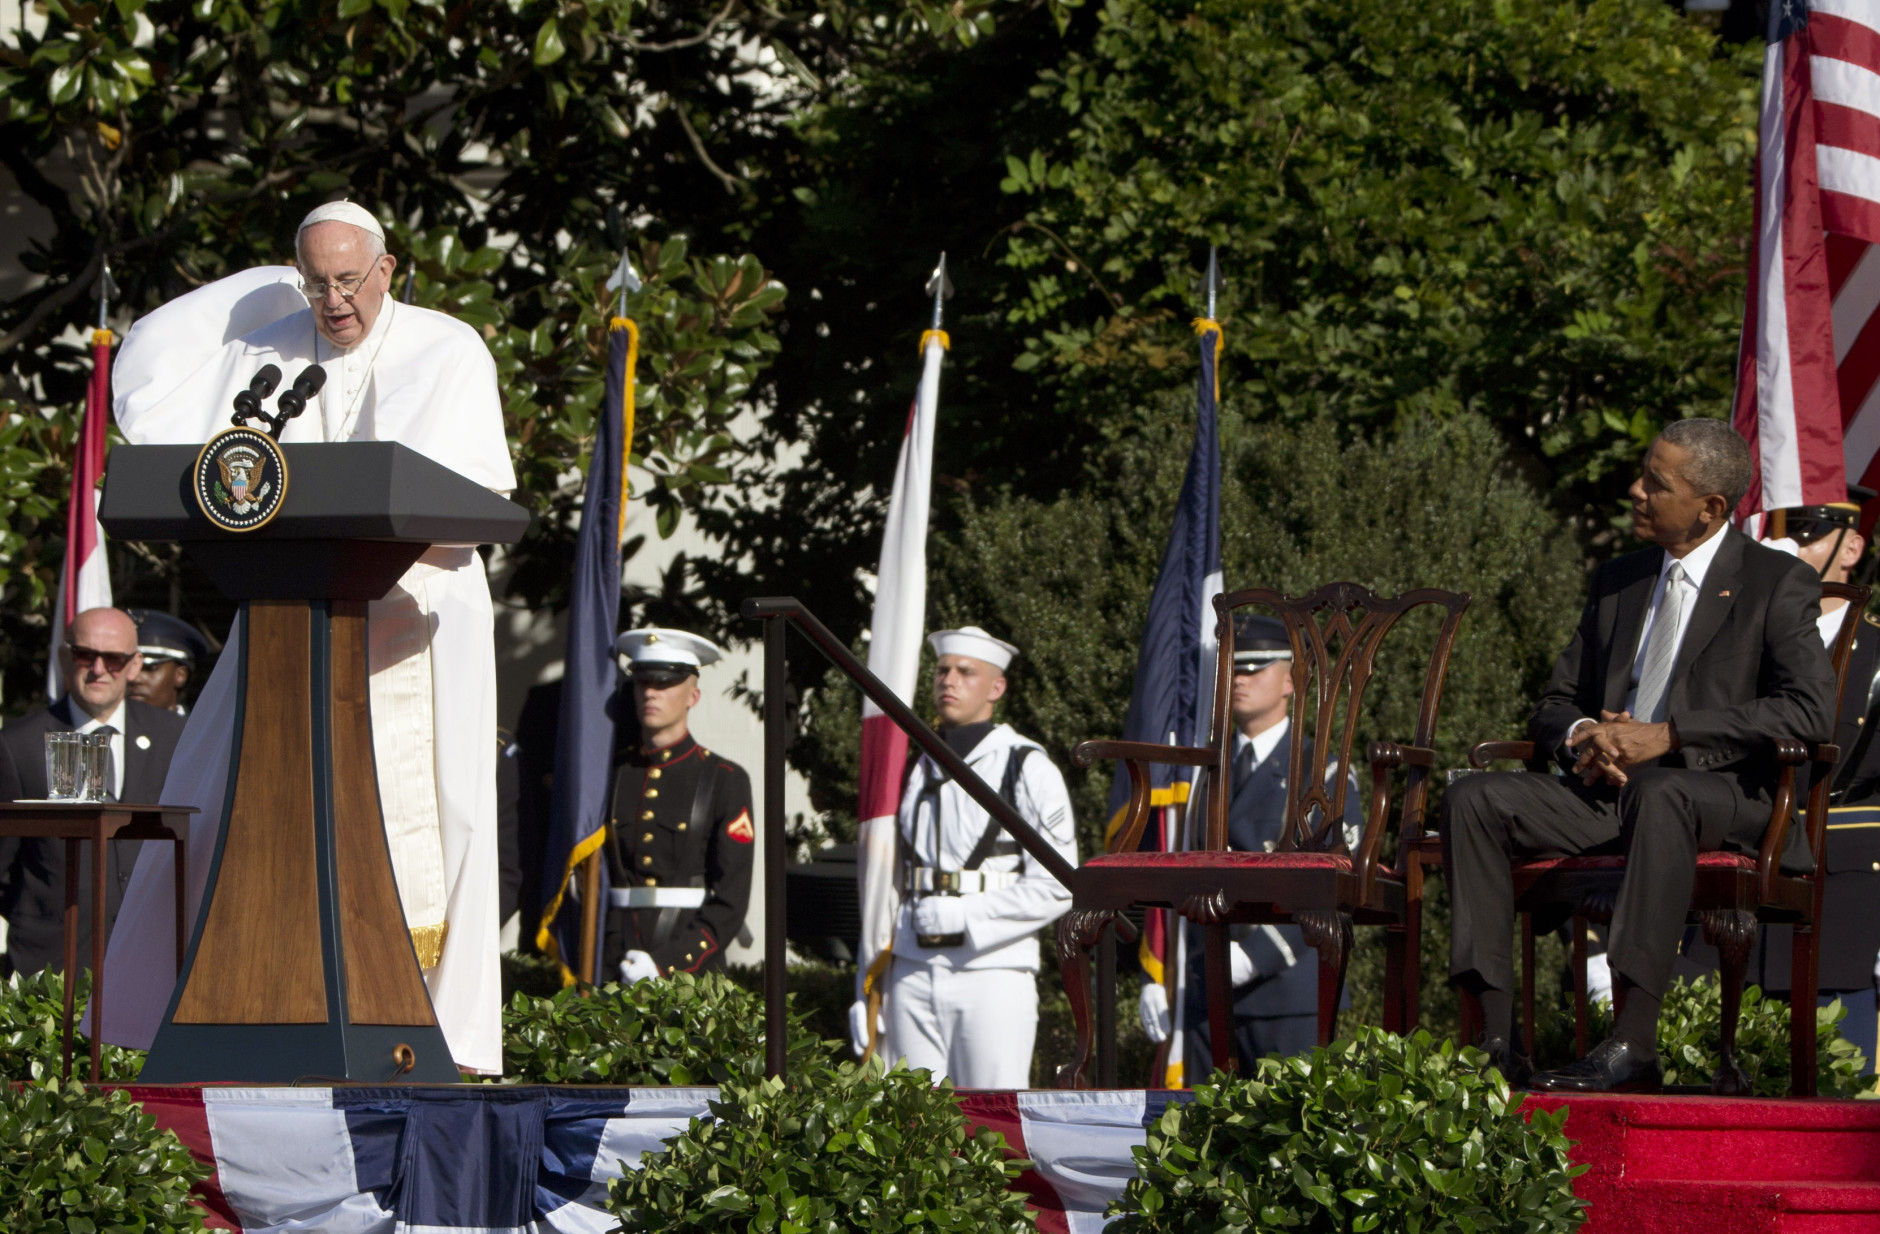 Pope Francis talks as President Barack Obama listens during a state arrival ceremony on the South Lawn of the White House in Washington, Wednesday, Sept. 23, 2015. (AP Photo/Alessandra Tarantino)